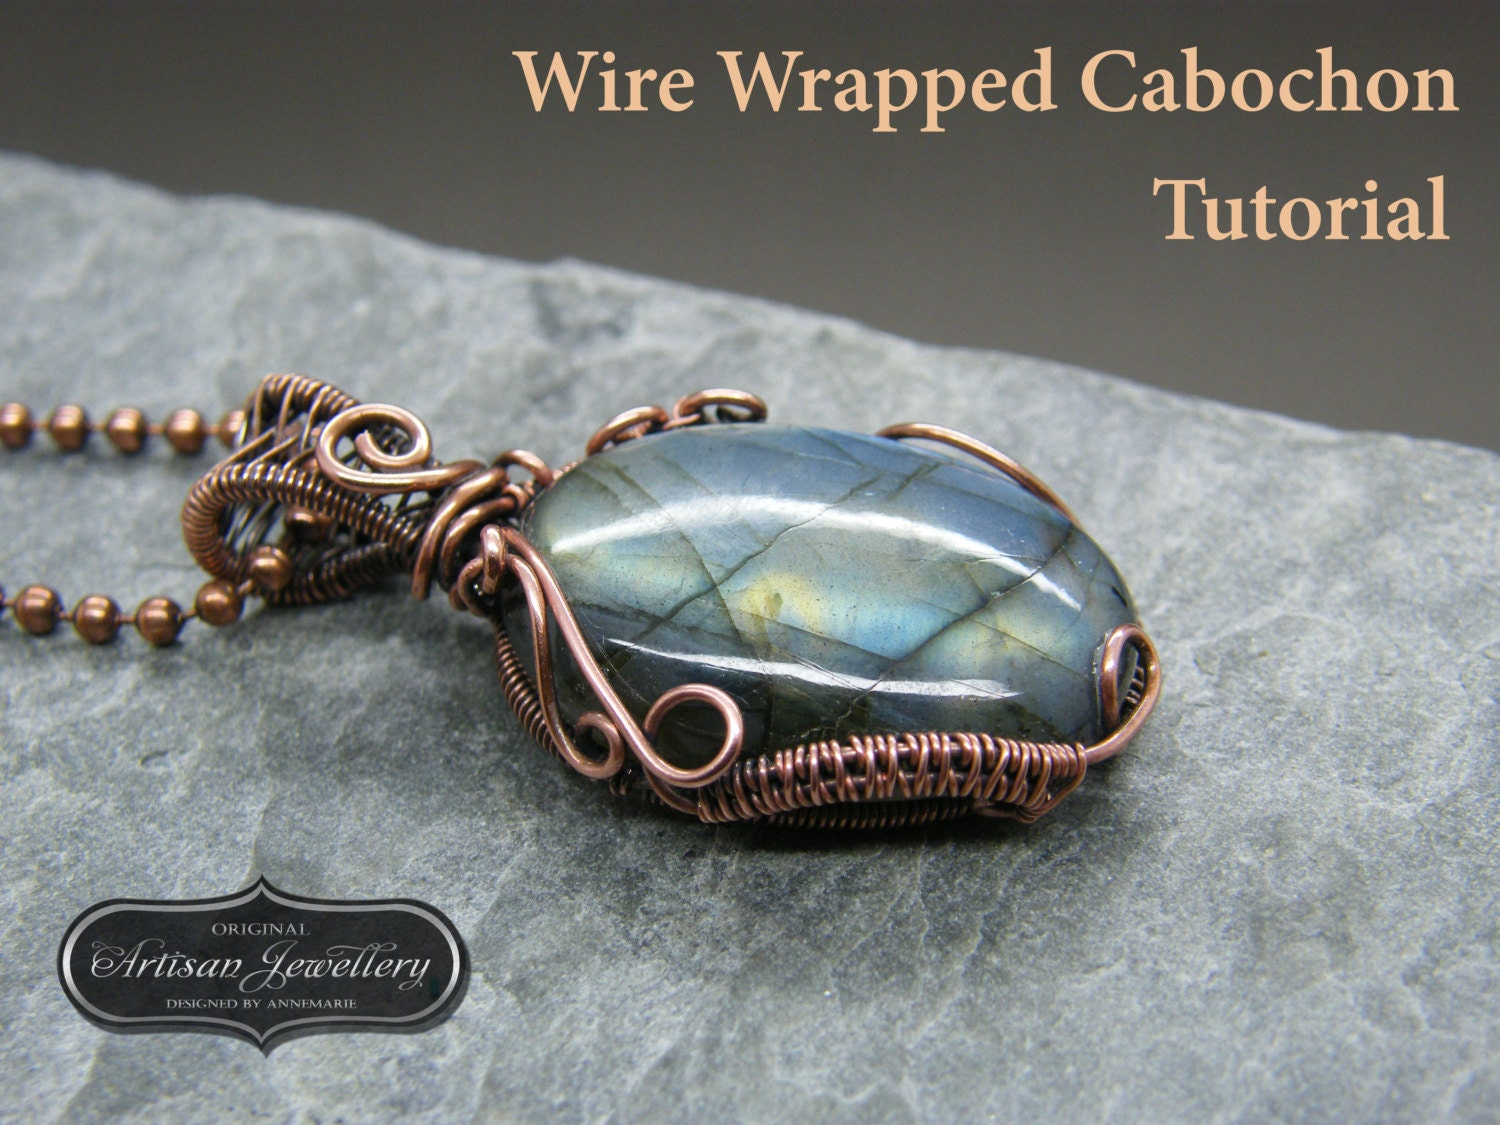 Wire wrapped pendant tutorial ~ Cabochon setting ~ Jewelry kit ...